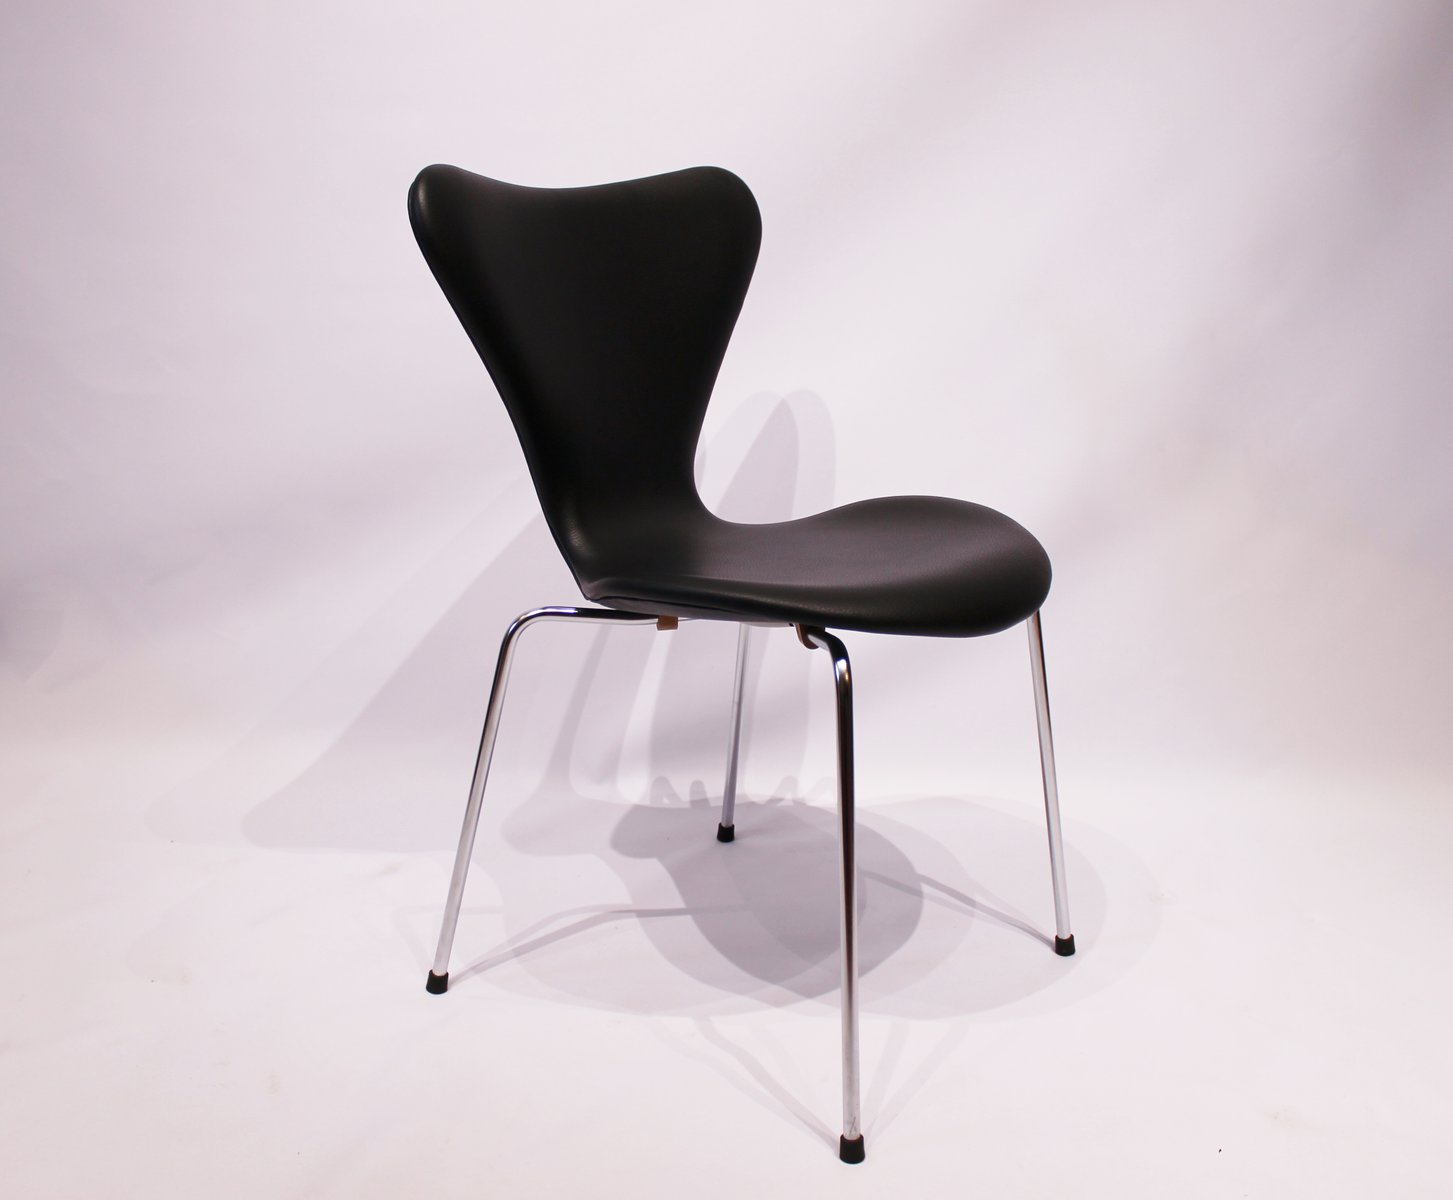 modell 3107 seven st hle aus schwarzem leder von arne jacobsen f r fritz hansen 1980er 4er set. Black Bedroom Furniture Sets. Home Design Ideas